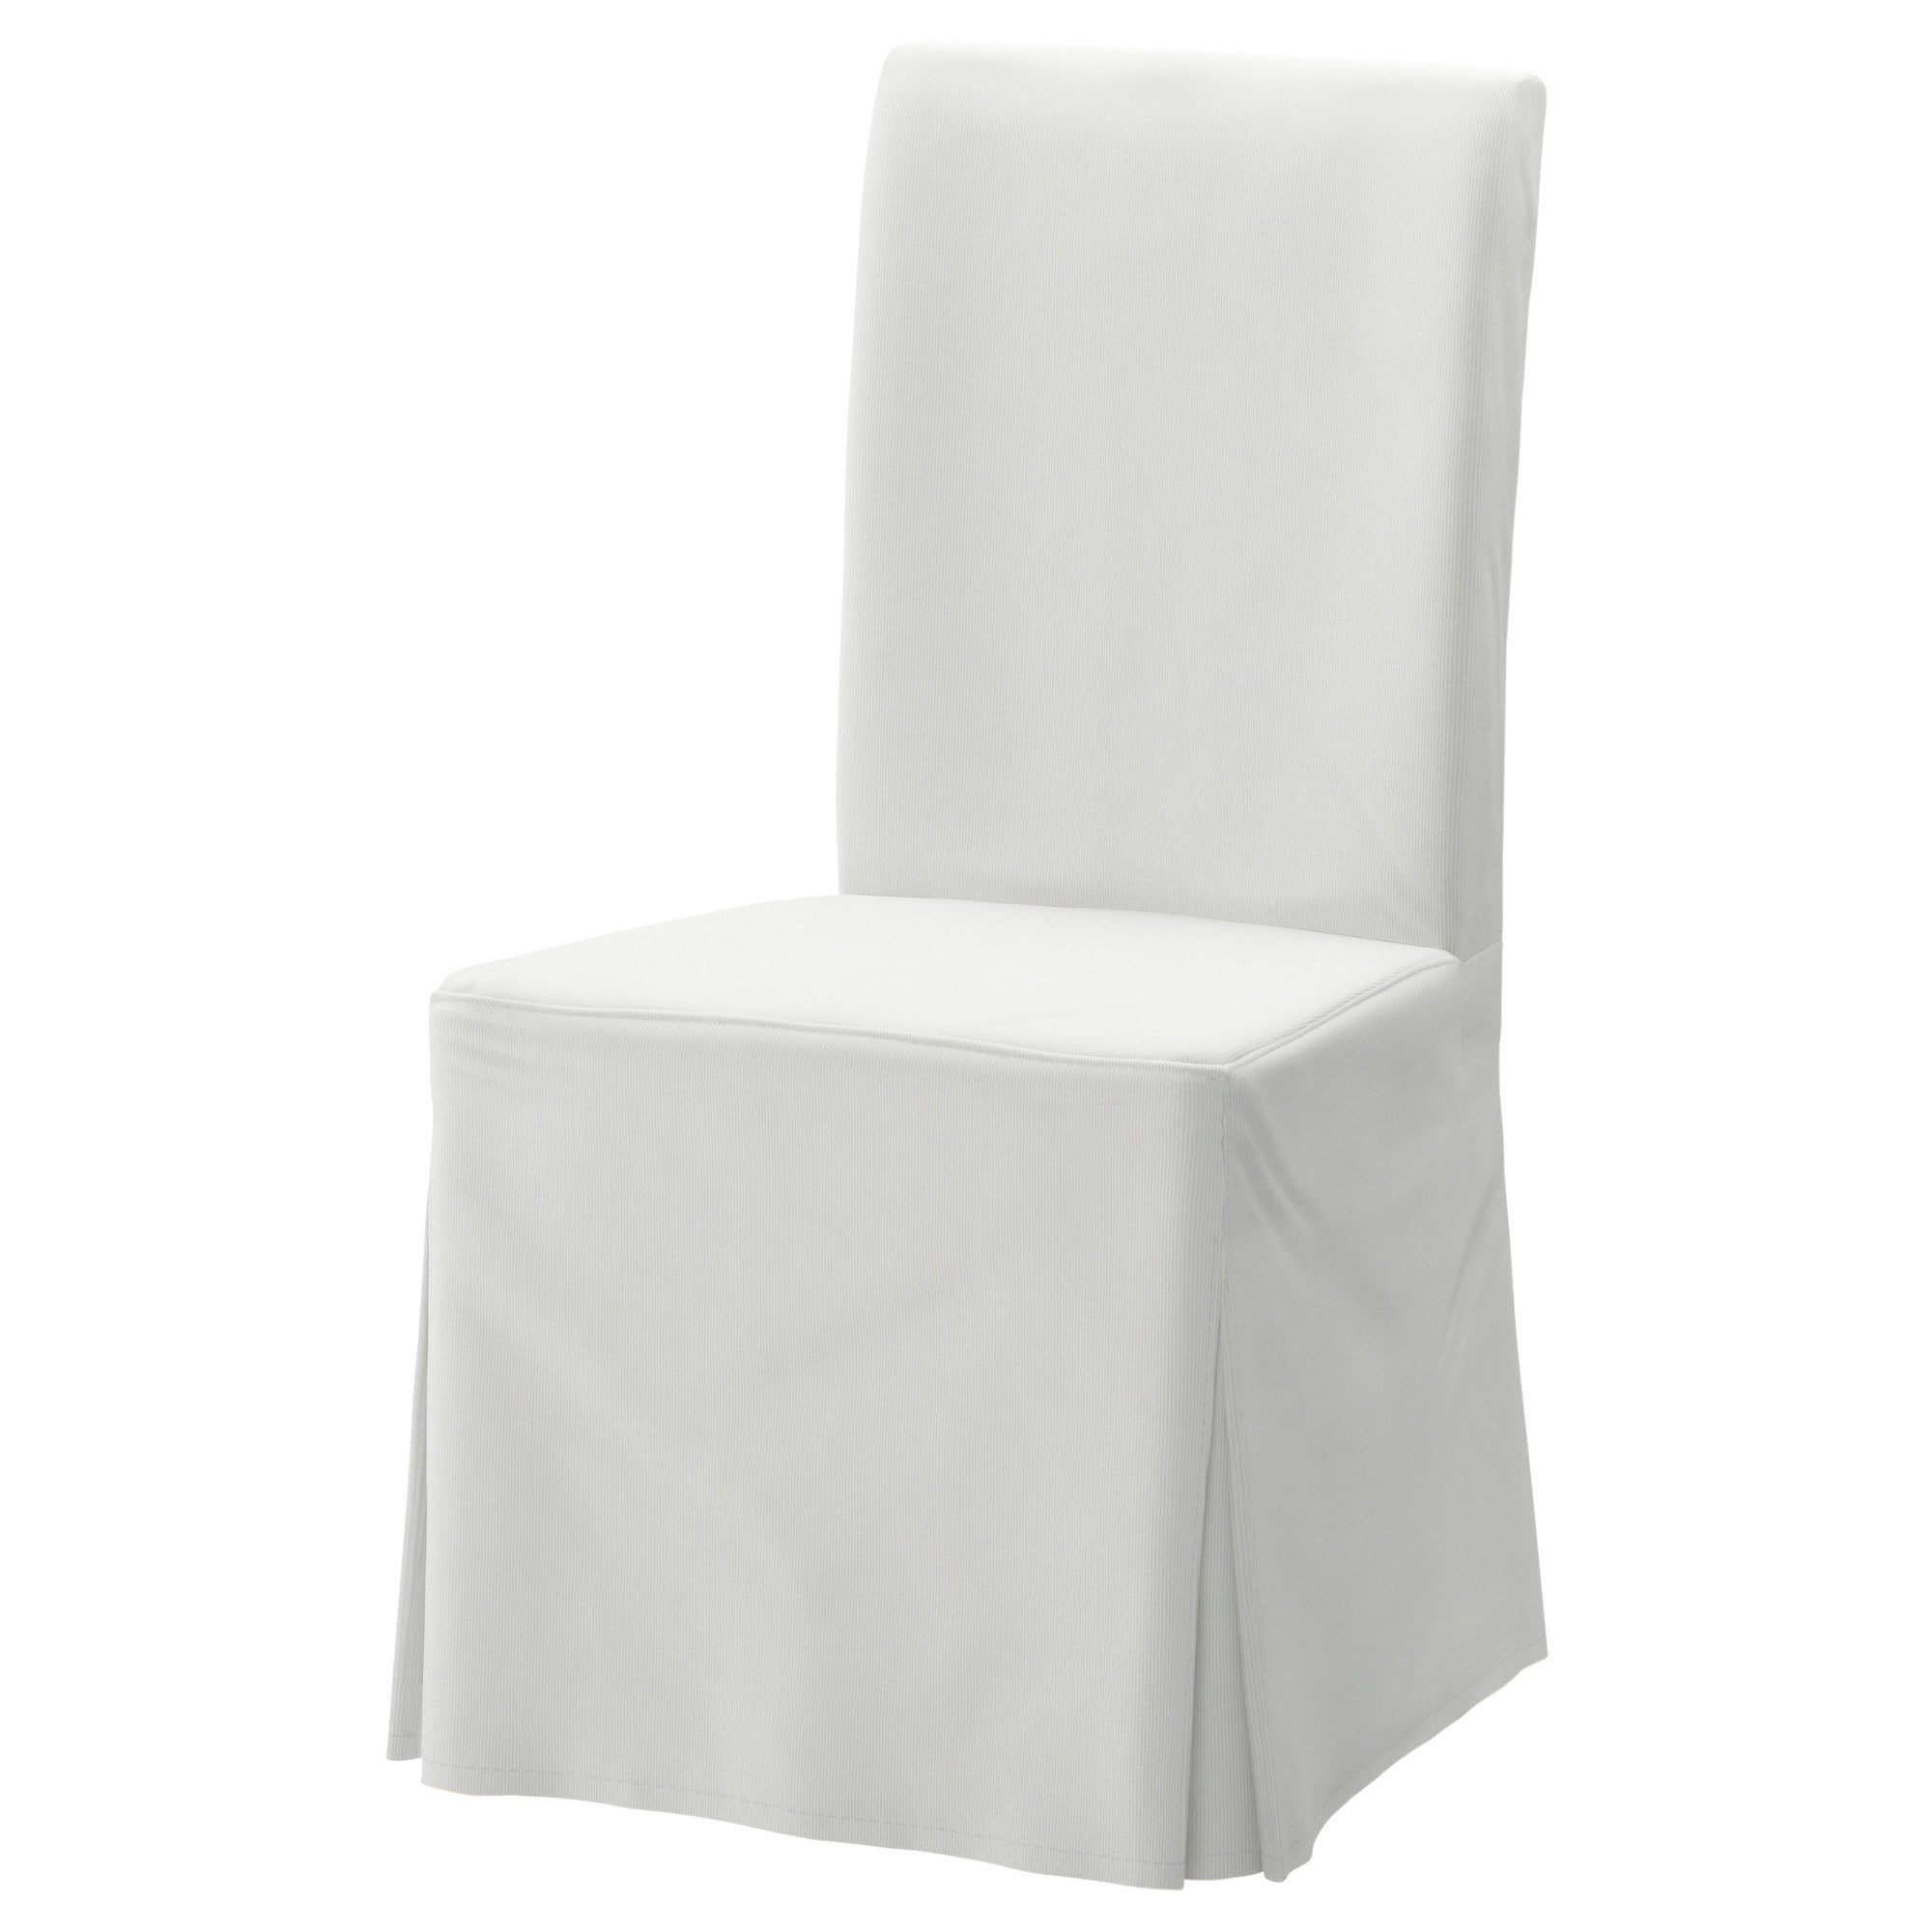 club chair covers high chairs for babies henriksdal cover long ikea feedback